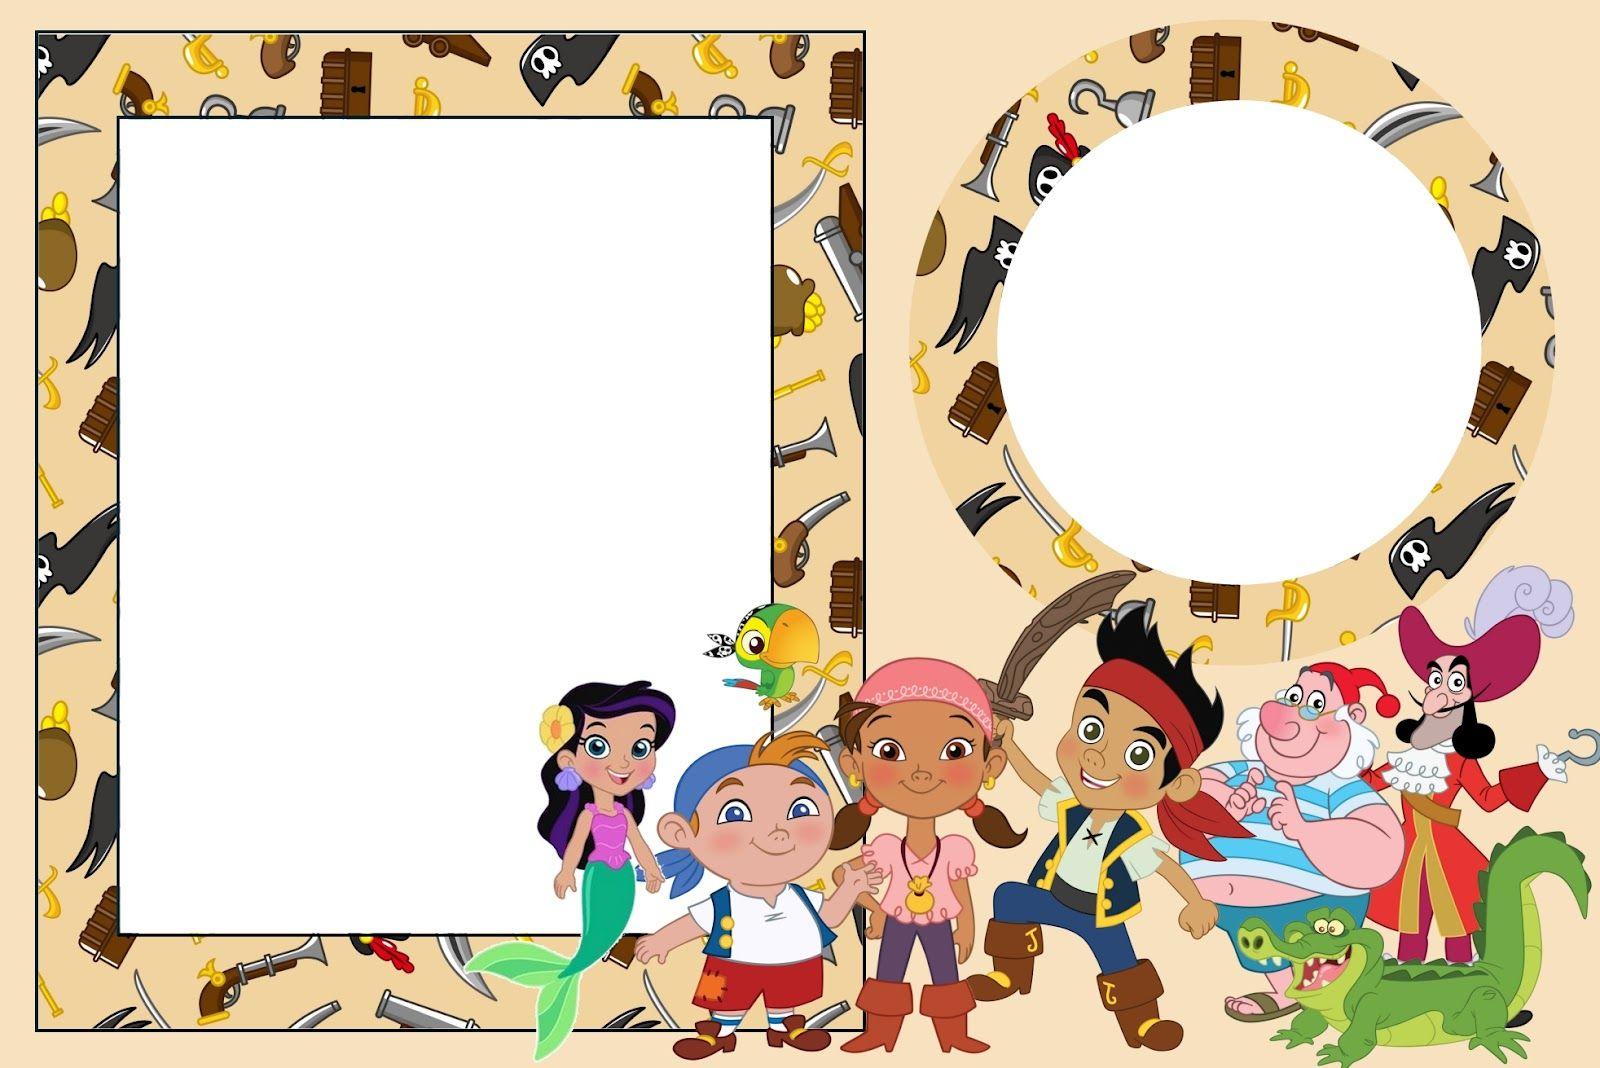 Jake and the never land pirates free printable invitations jake jake and the never land pirates free printable invitations filmwisefo